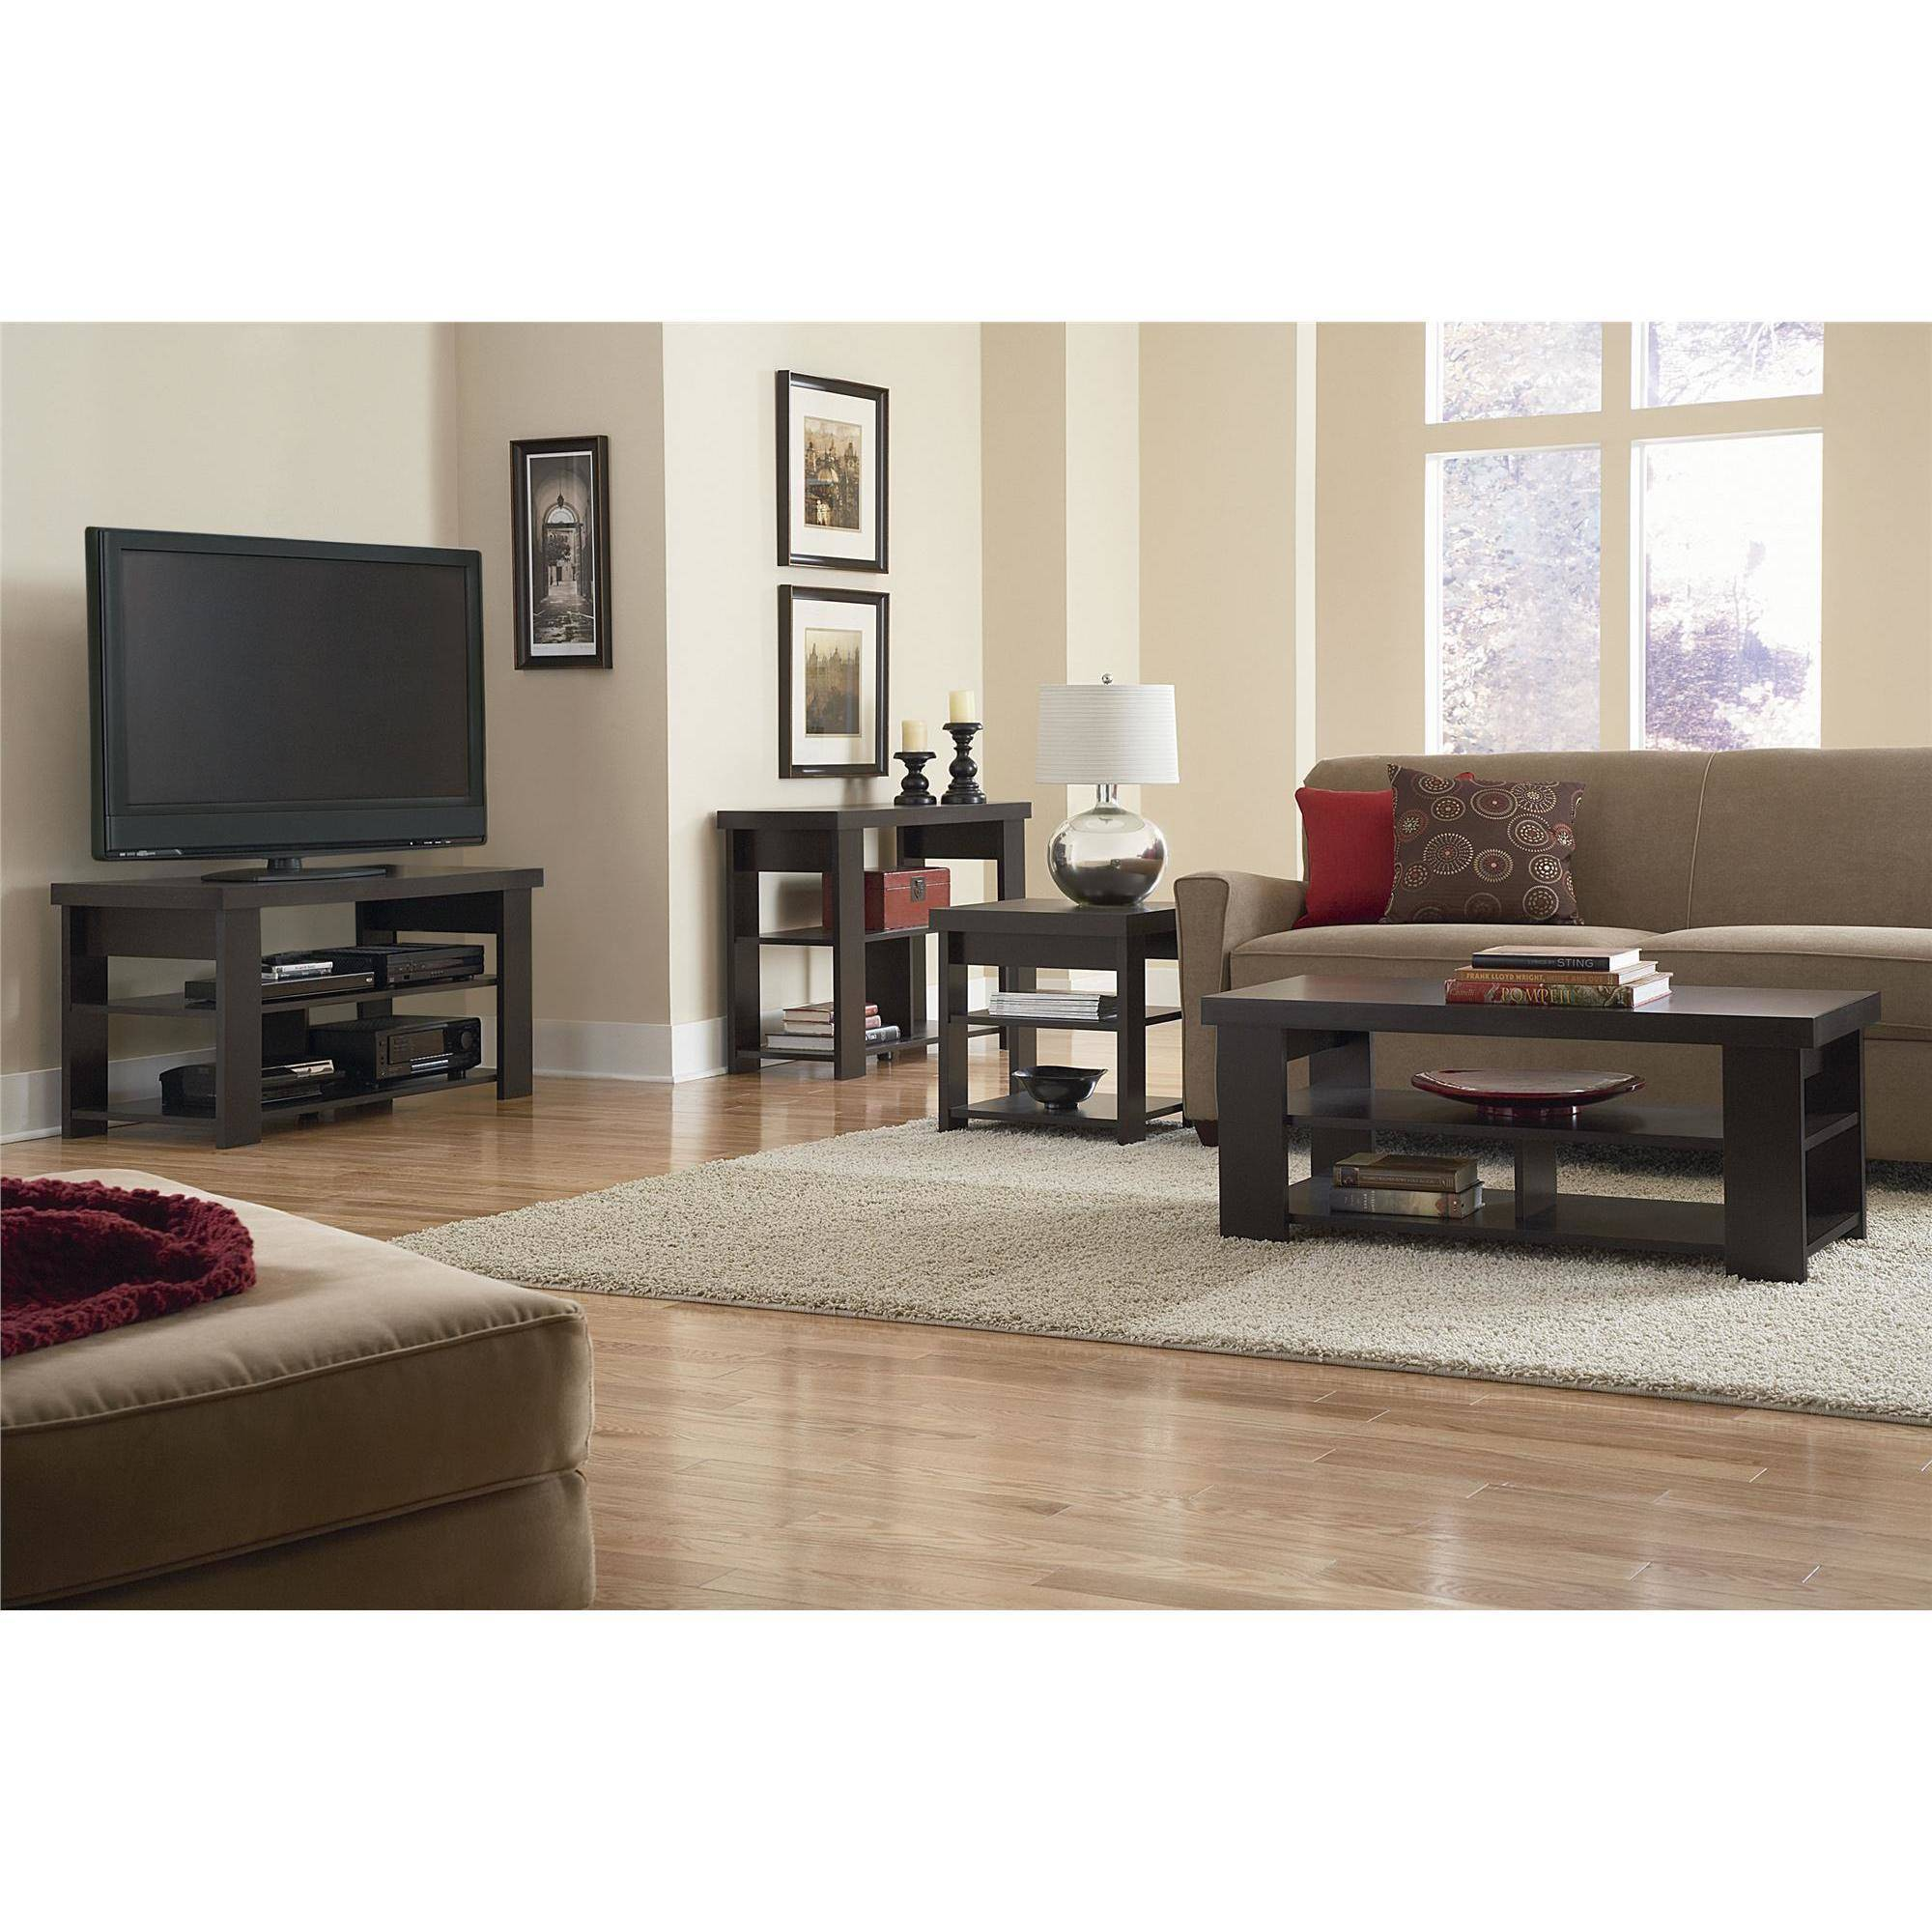 Ameriwood Home Jensen Coffee Table Multiple Colors Walmartcom - Espresso finish coffee table set